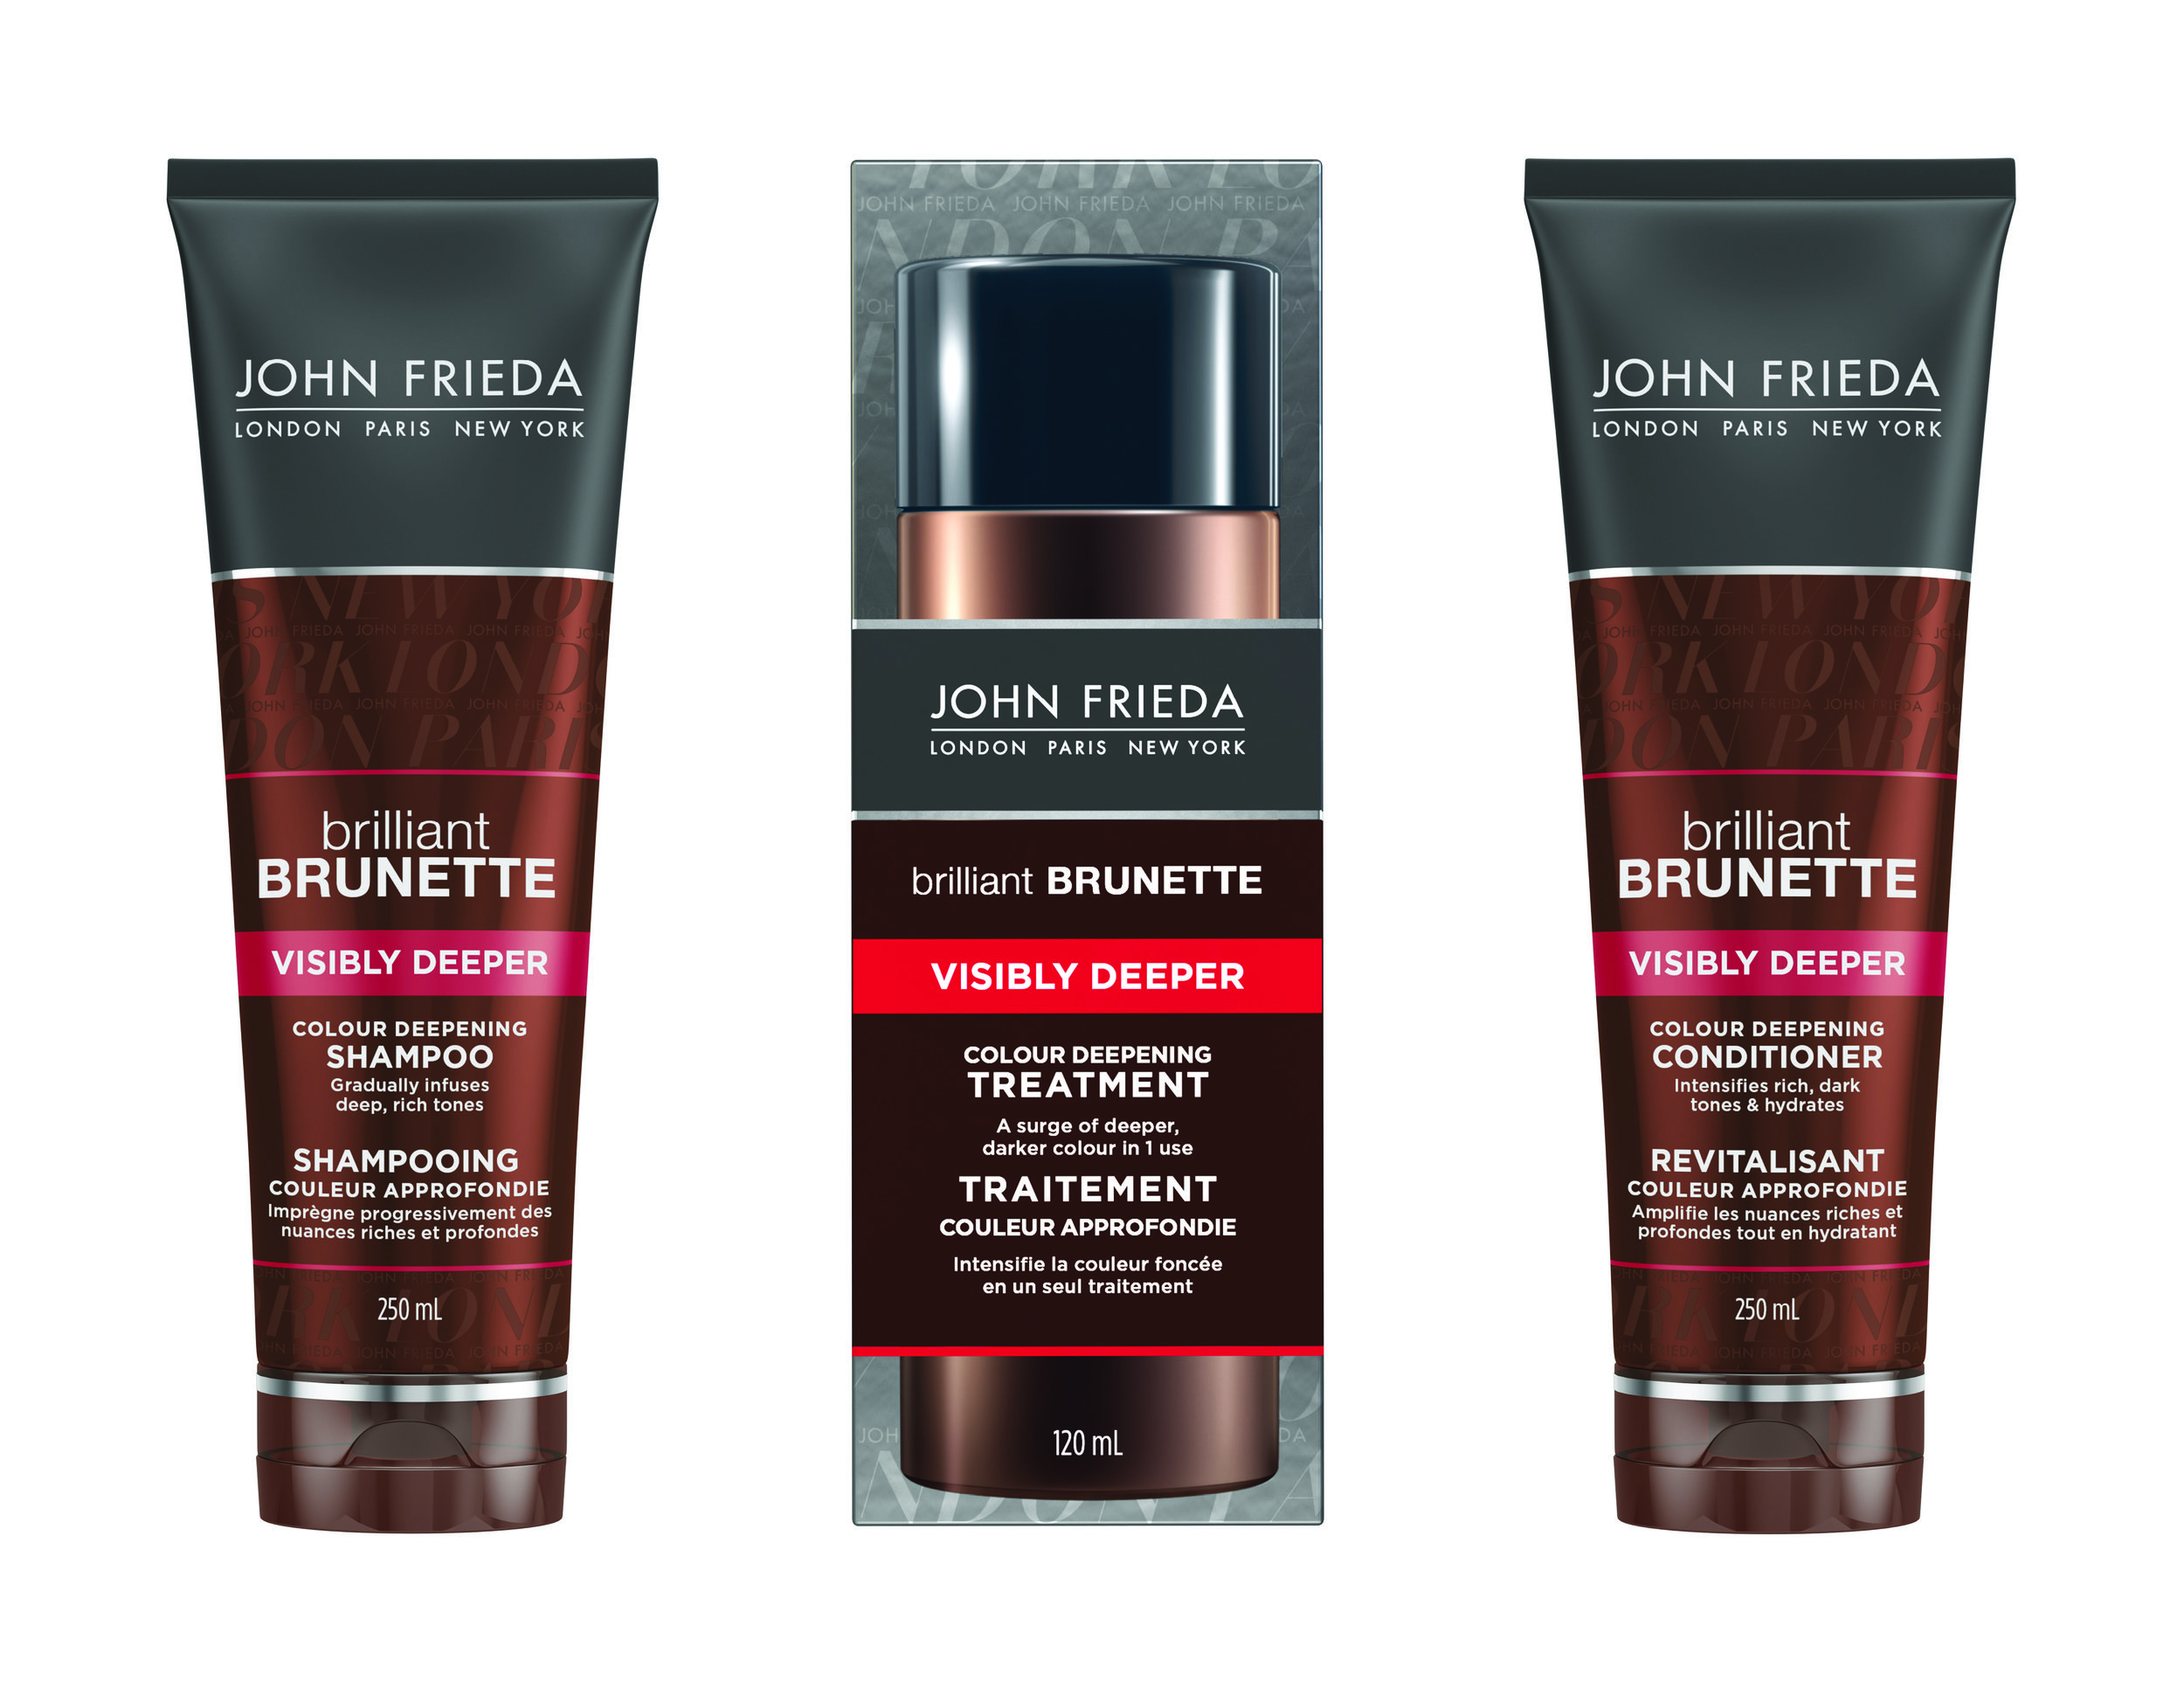 JOHN FRIEDA Brilliant Brunette Visibly Deeper Colour Deepening Treatment and Brilliant Brunette Visibly Deeper Colour Deepening Shampoo and Conditioner, $12.99 each. Available at drugstores & mass market retailers across Canada.